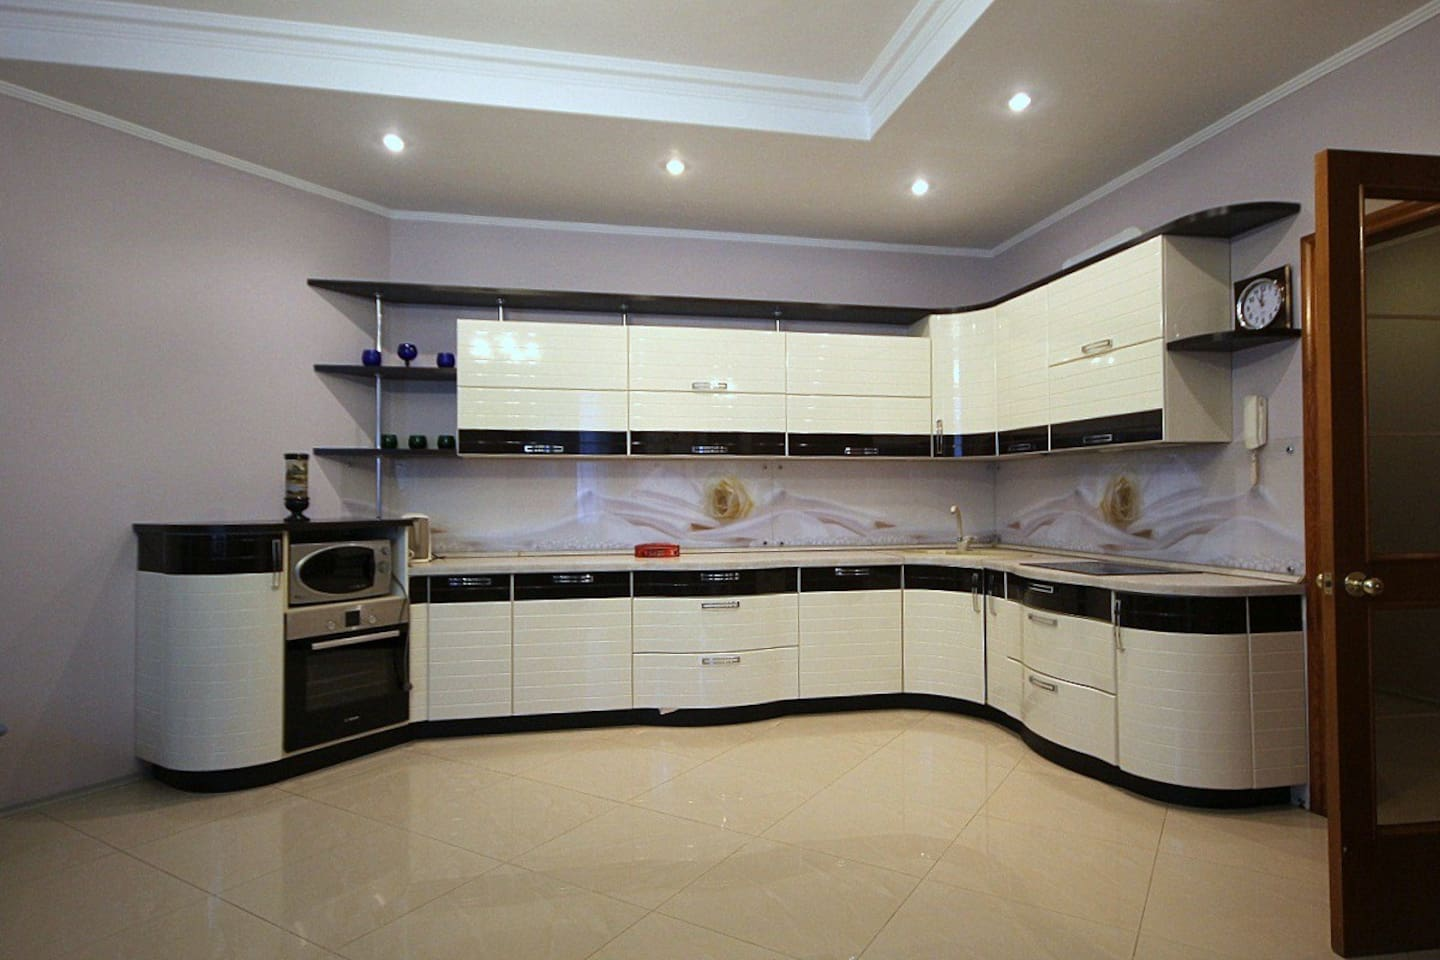 One month rent 26000 US Dollars Please call or contact Viber +79037115828 barysheva@chaseestate.ru